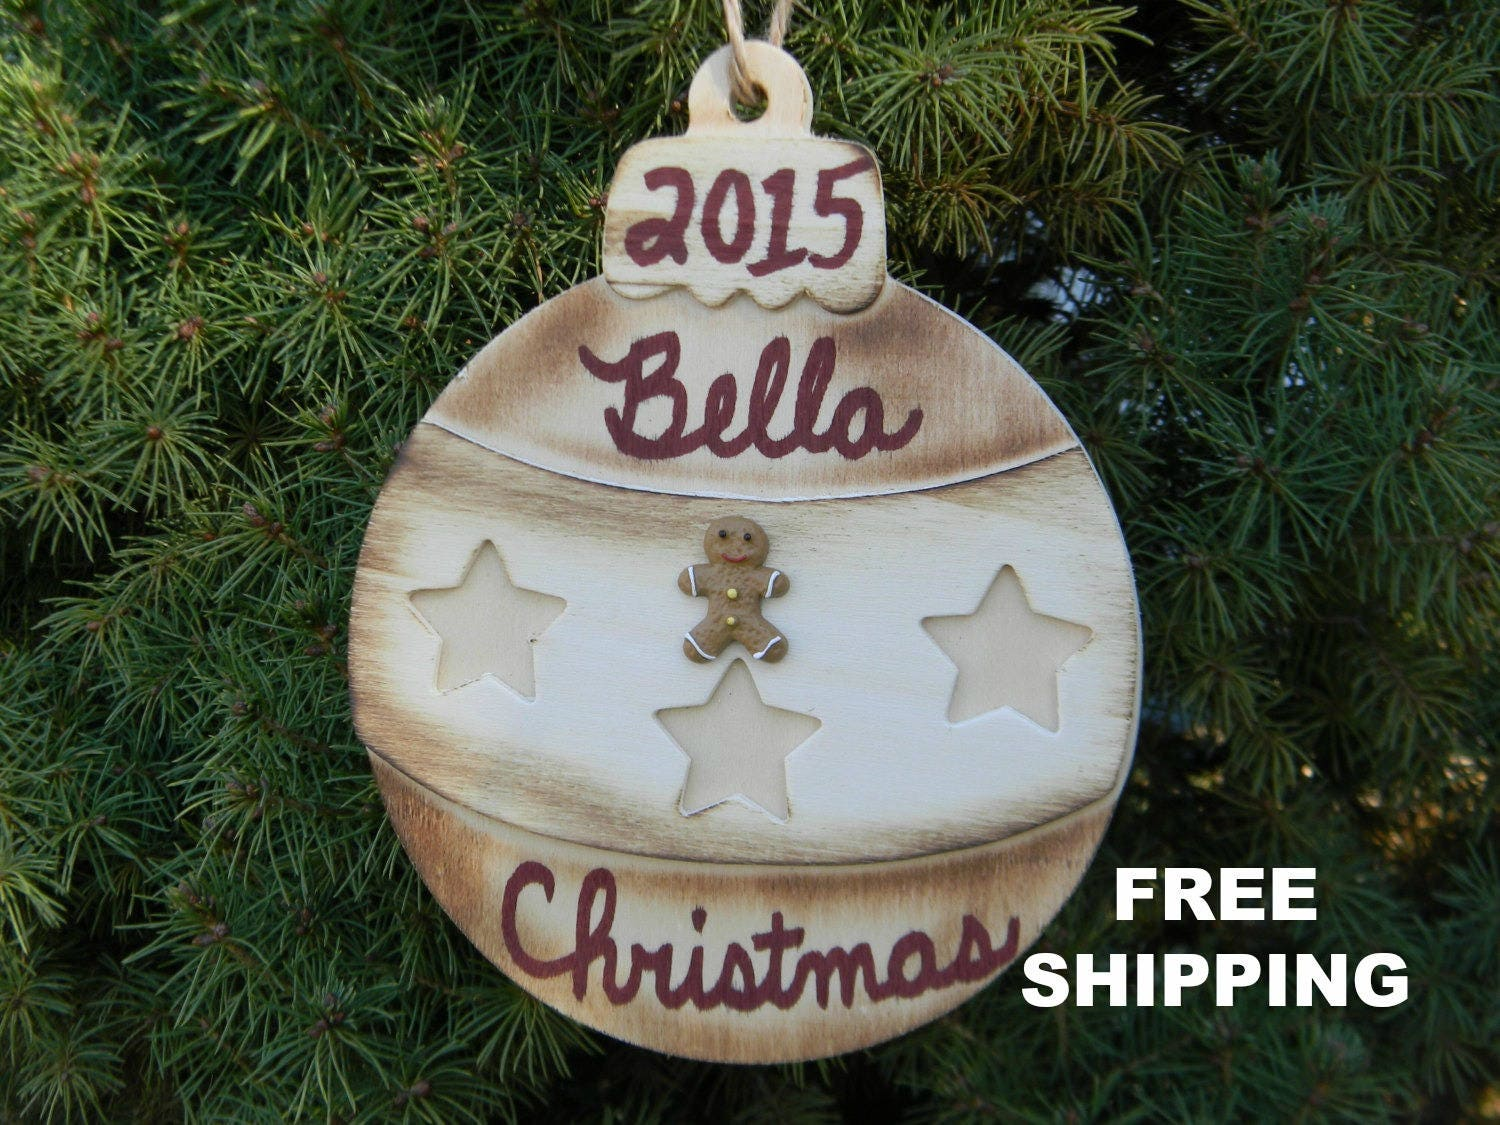 Rustic christmas tree ornaments - Personalized Christmas Ornament Kids Christmas Gift Holiday Ornament Rustic Christmas Bulb Gingerbread Man Christmas Tree Decorations